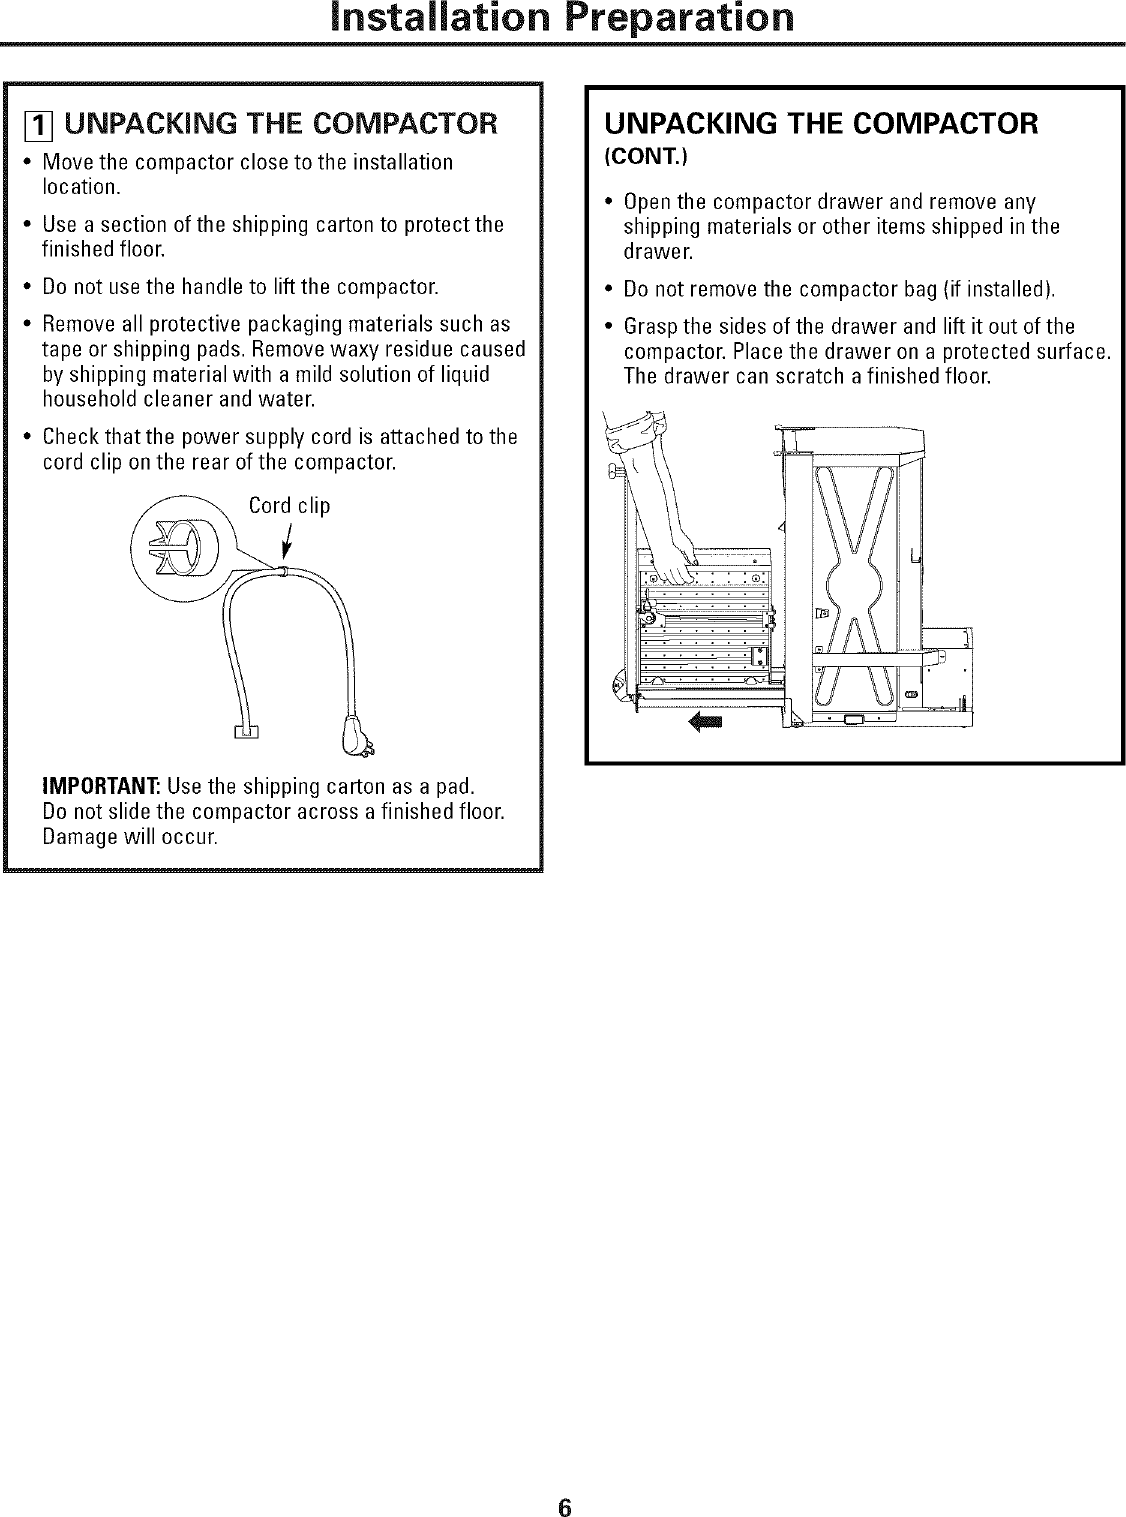 Electrical Wiring Commercial Pdf Download By Ovacliter Manual Guide